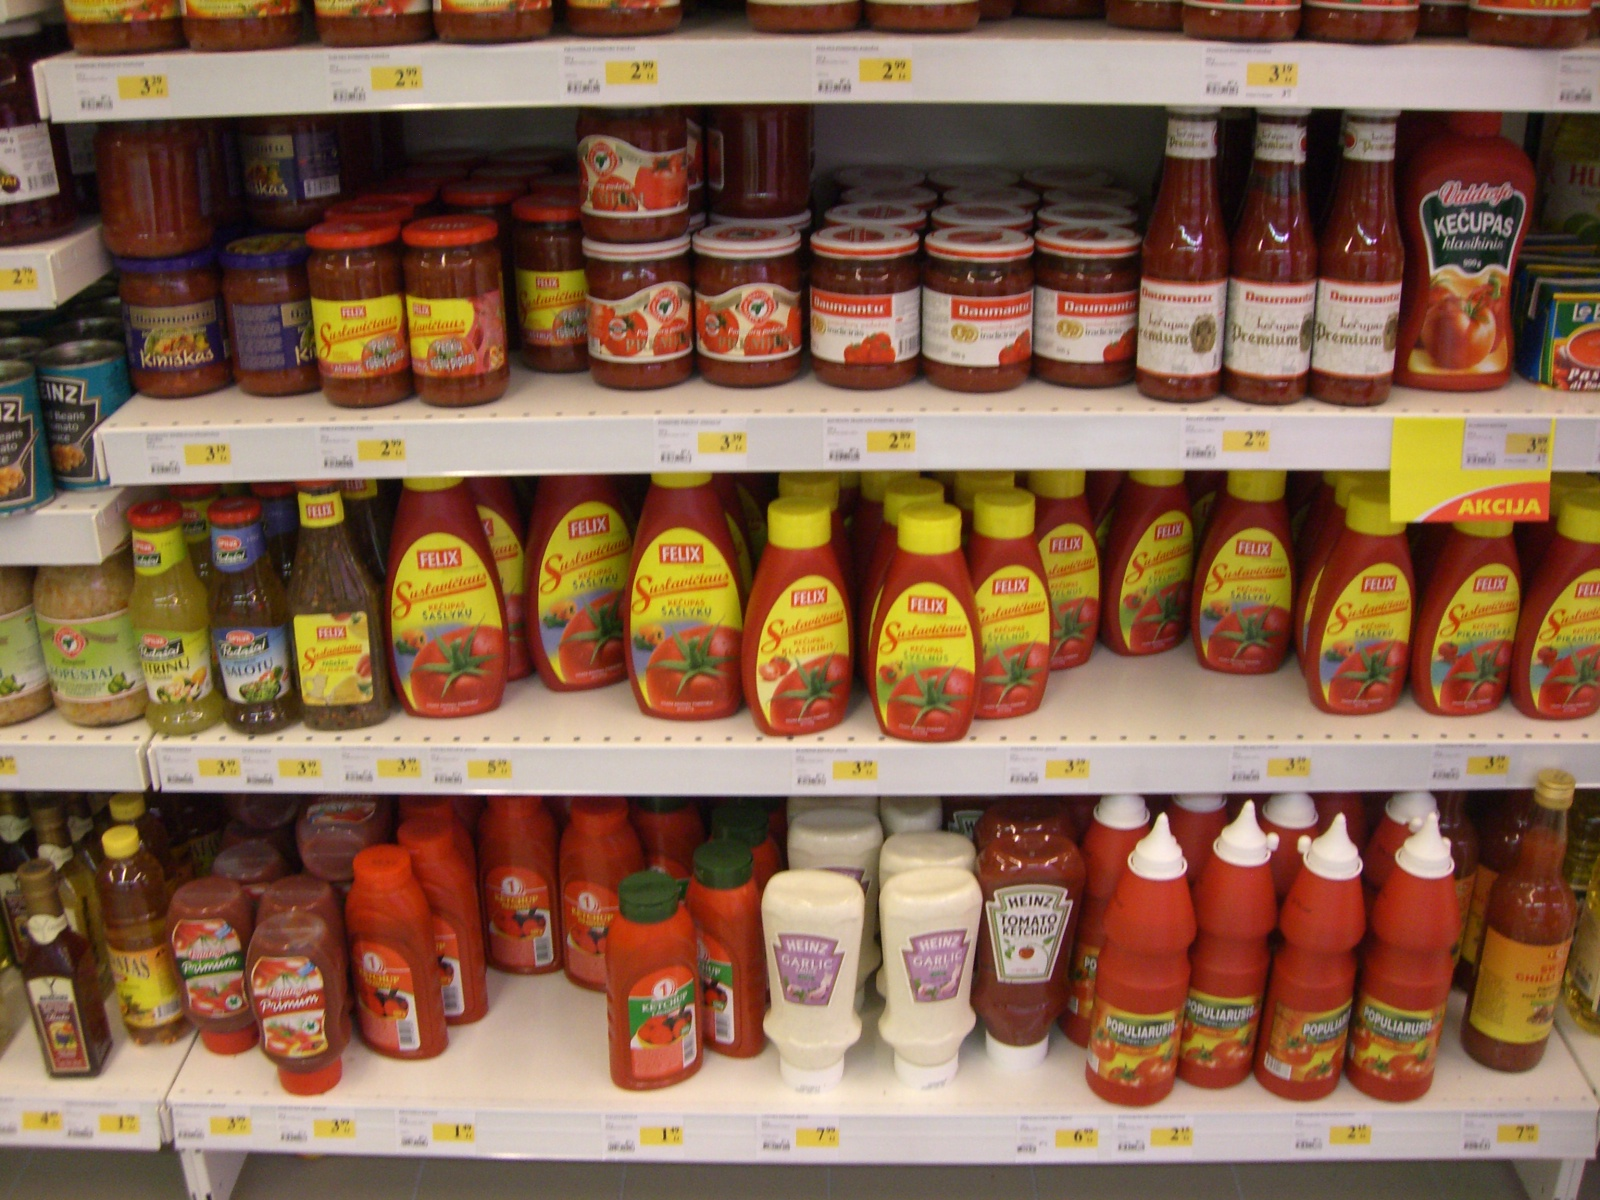 Small Lithuanian market's vast ketchup offering